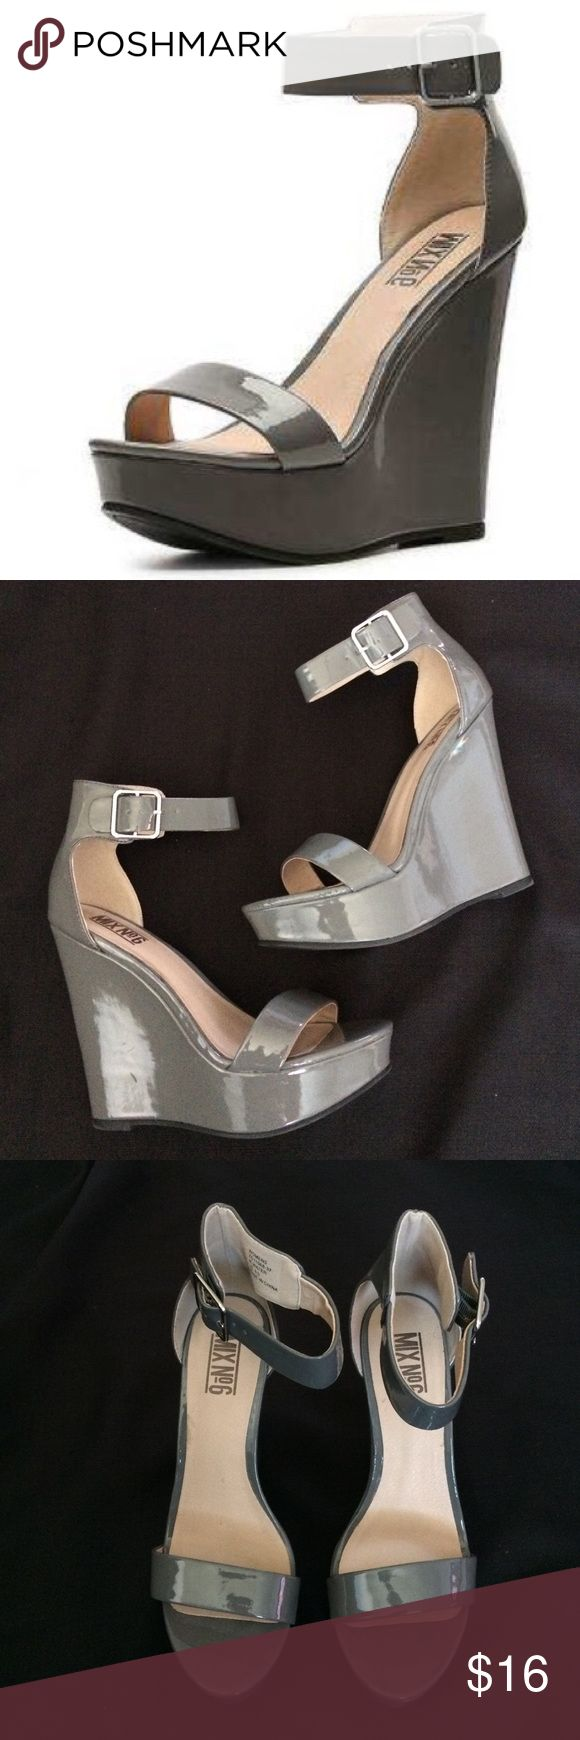 Mix No.6 gray wedges Gently used Mix No.6 Gray wedges. Size 6 1/2 women's. ❤️ Shoes